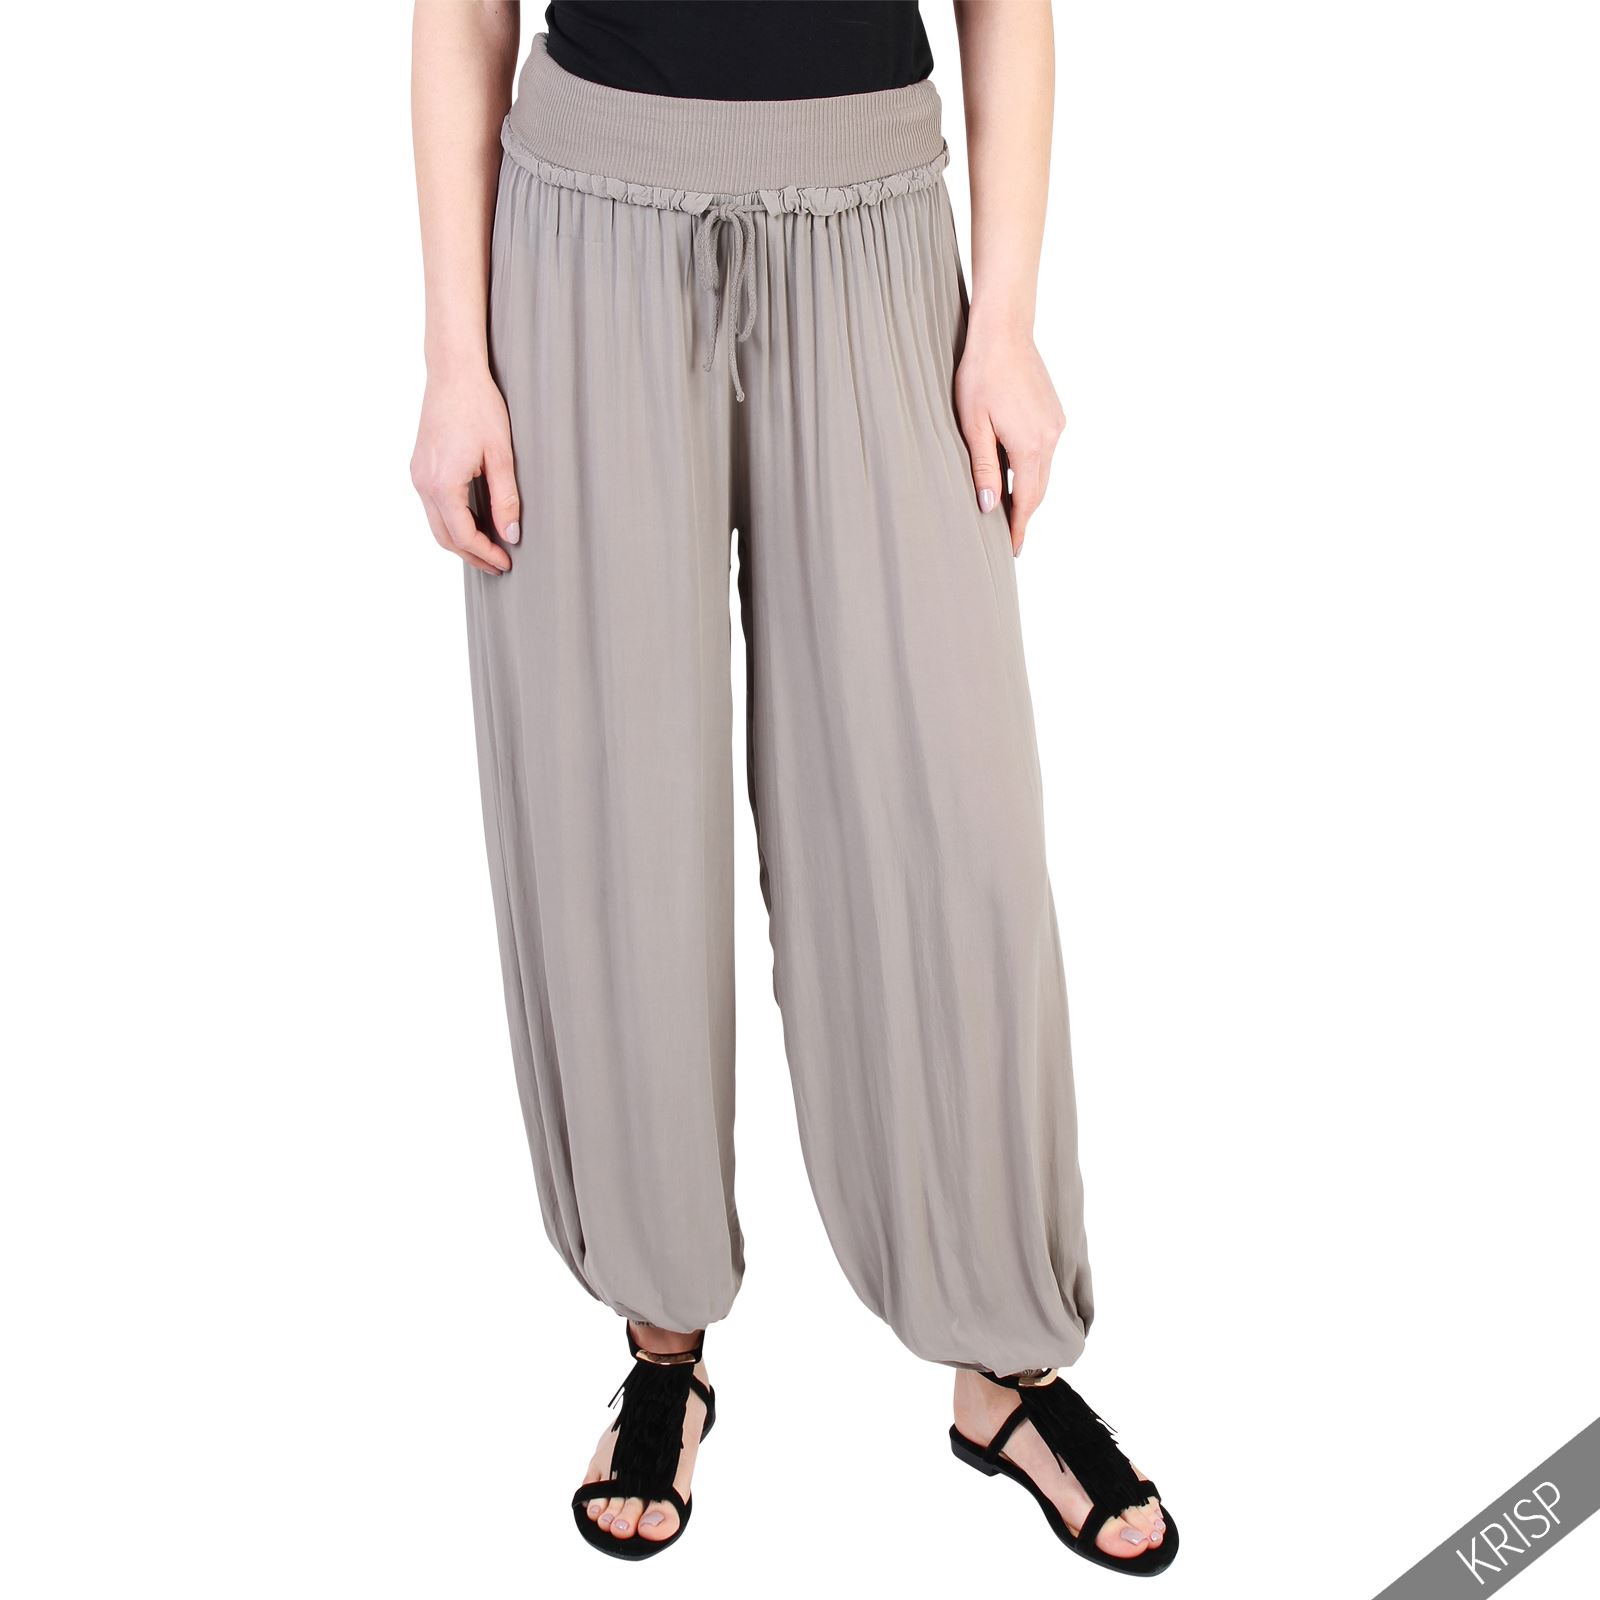 Plus Size Harem Pants. Stretchy Waist fits roughly 32